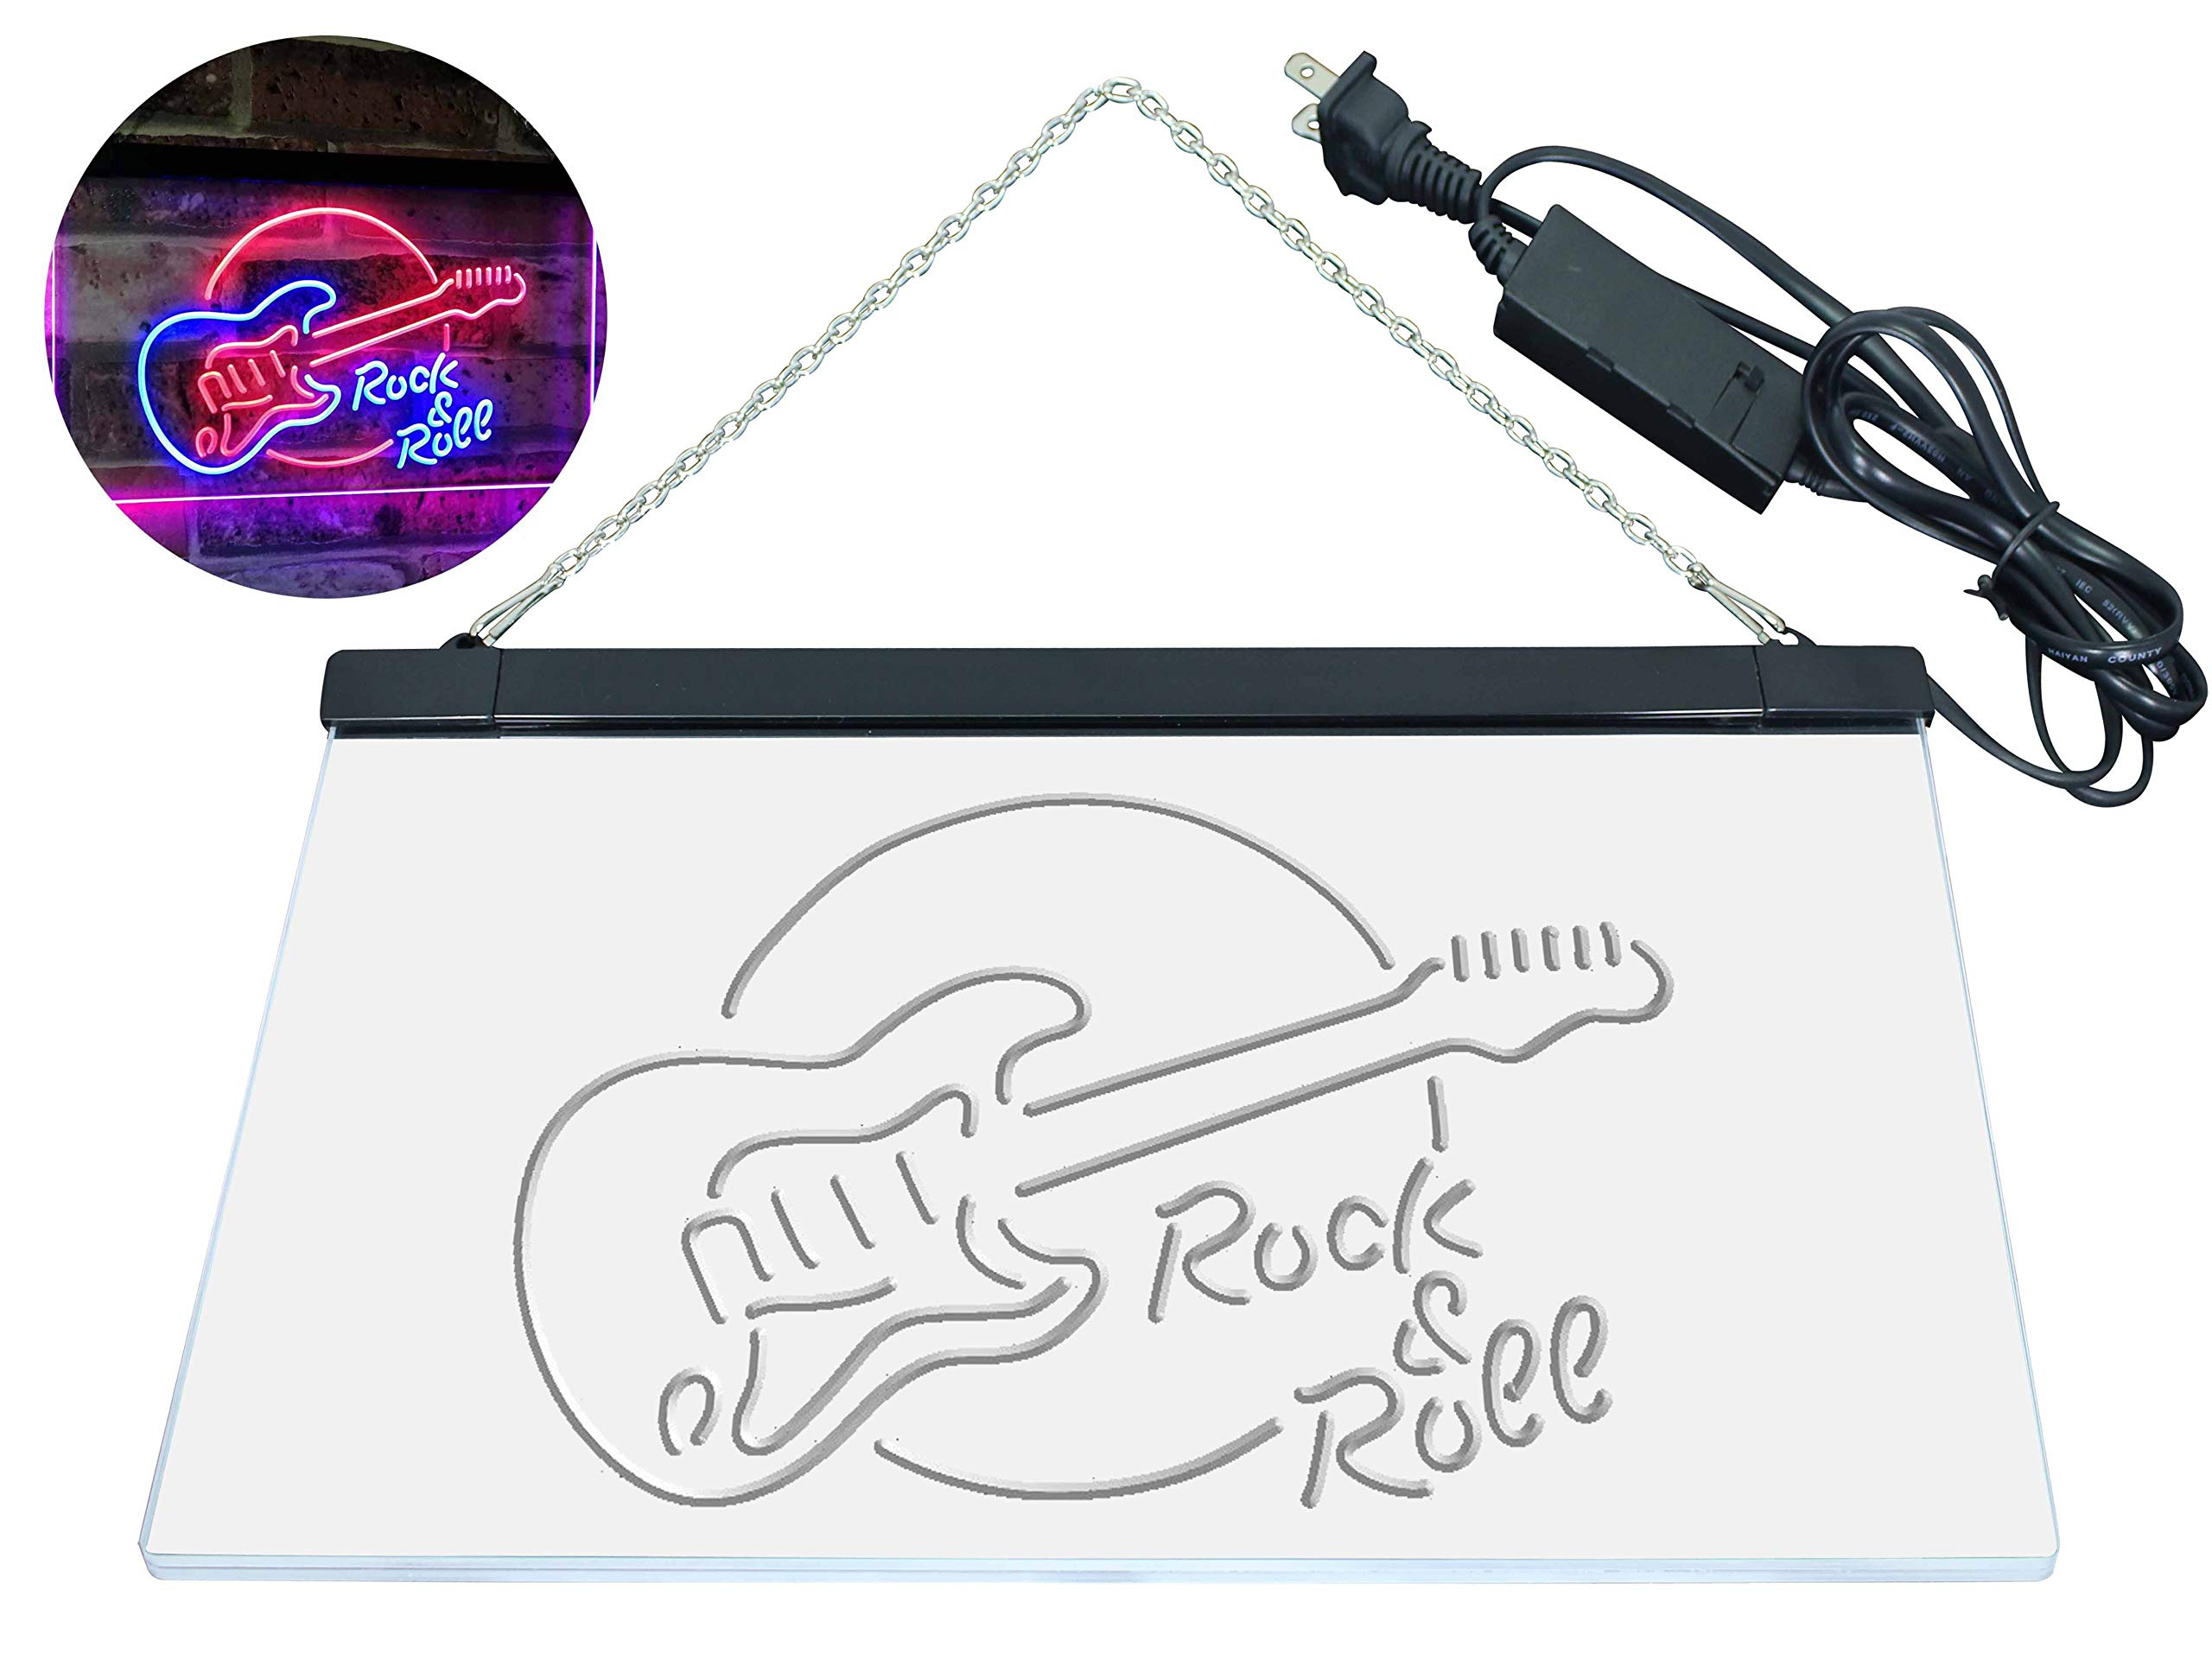 AdvpPro 2C Rock & Roll Electric Guitar Band Room Music Dual Color LED Neon Sign Blue & Red 12'' x 8.5'' st6s32-i2303-br